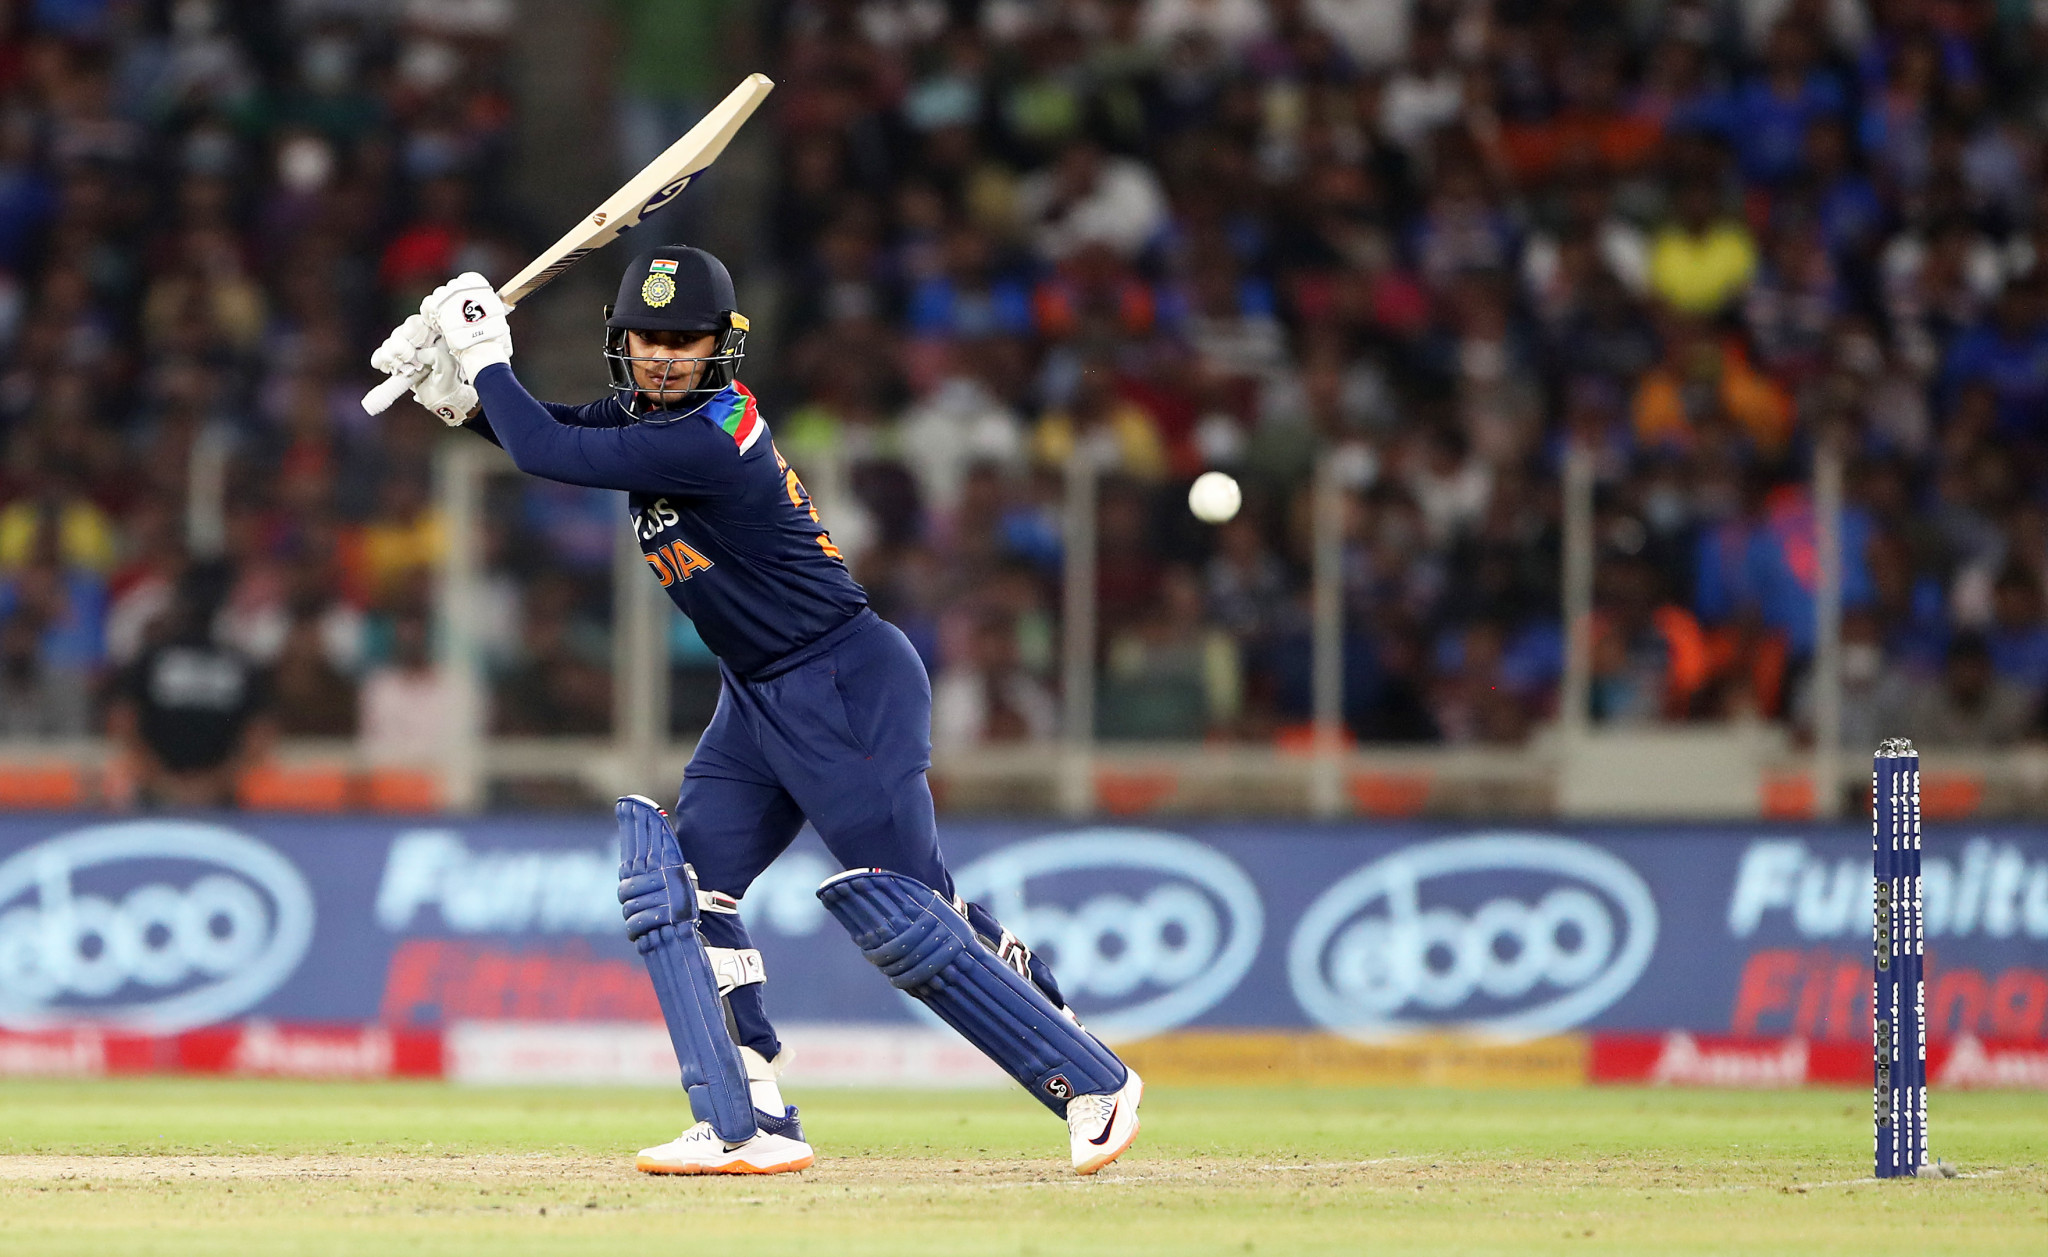 Cricket at the 2028 Olympics on agenda for next BCCI Apex Council meeting